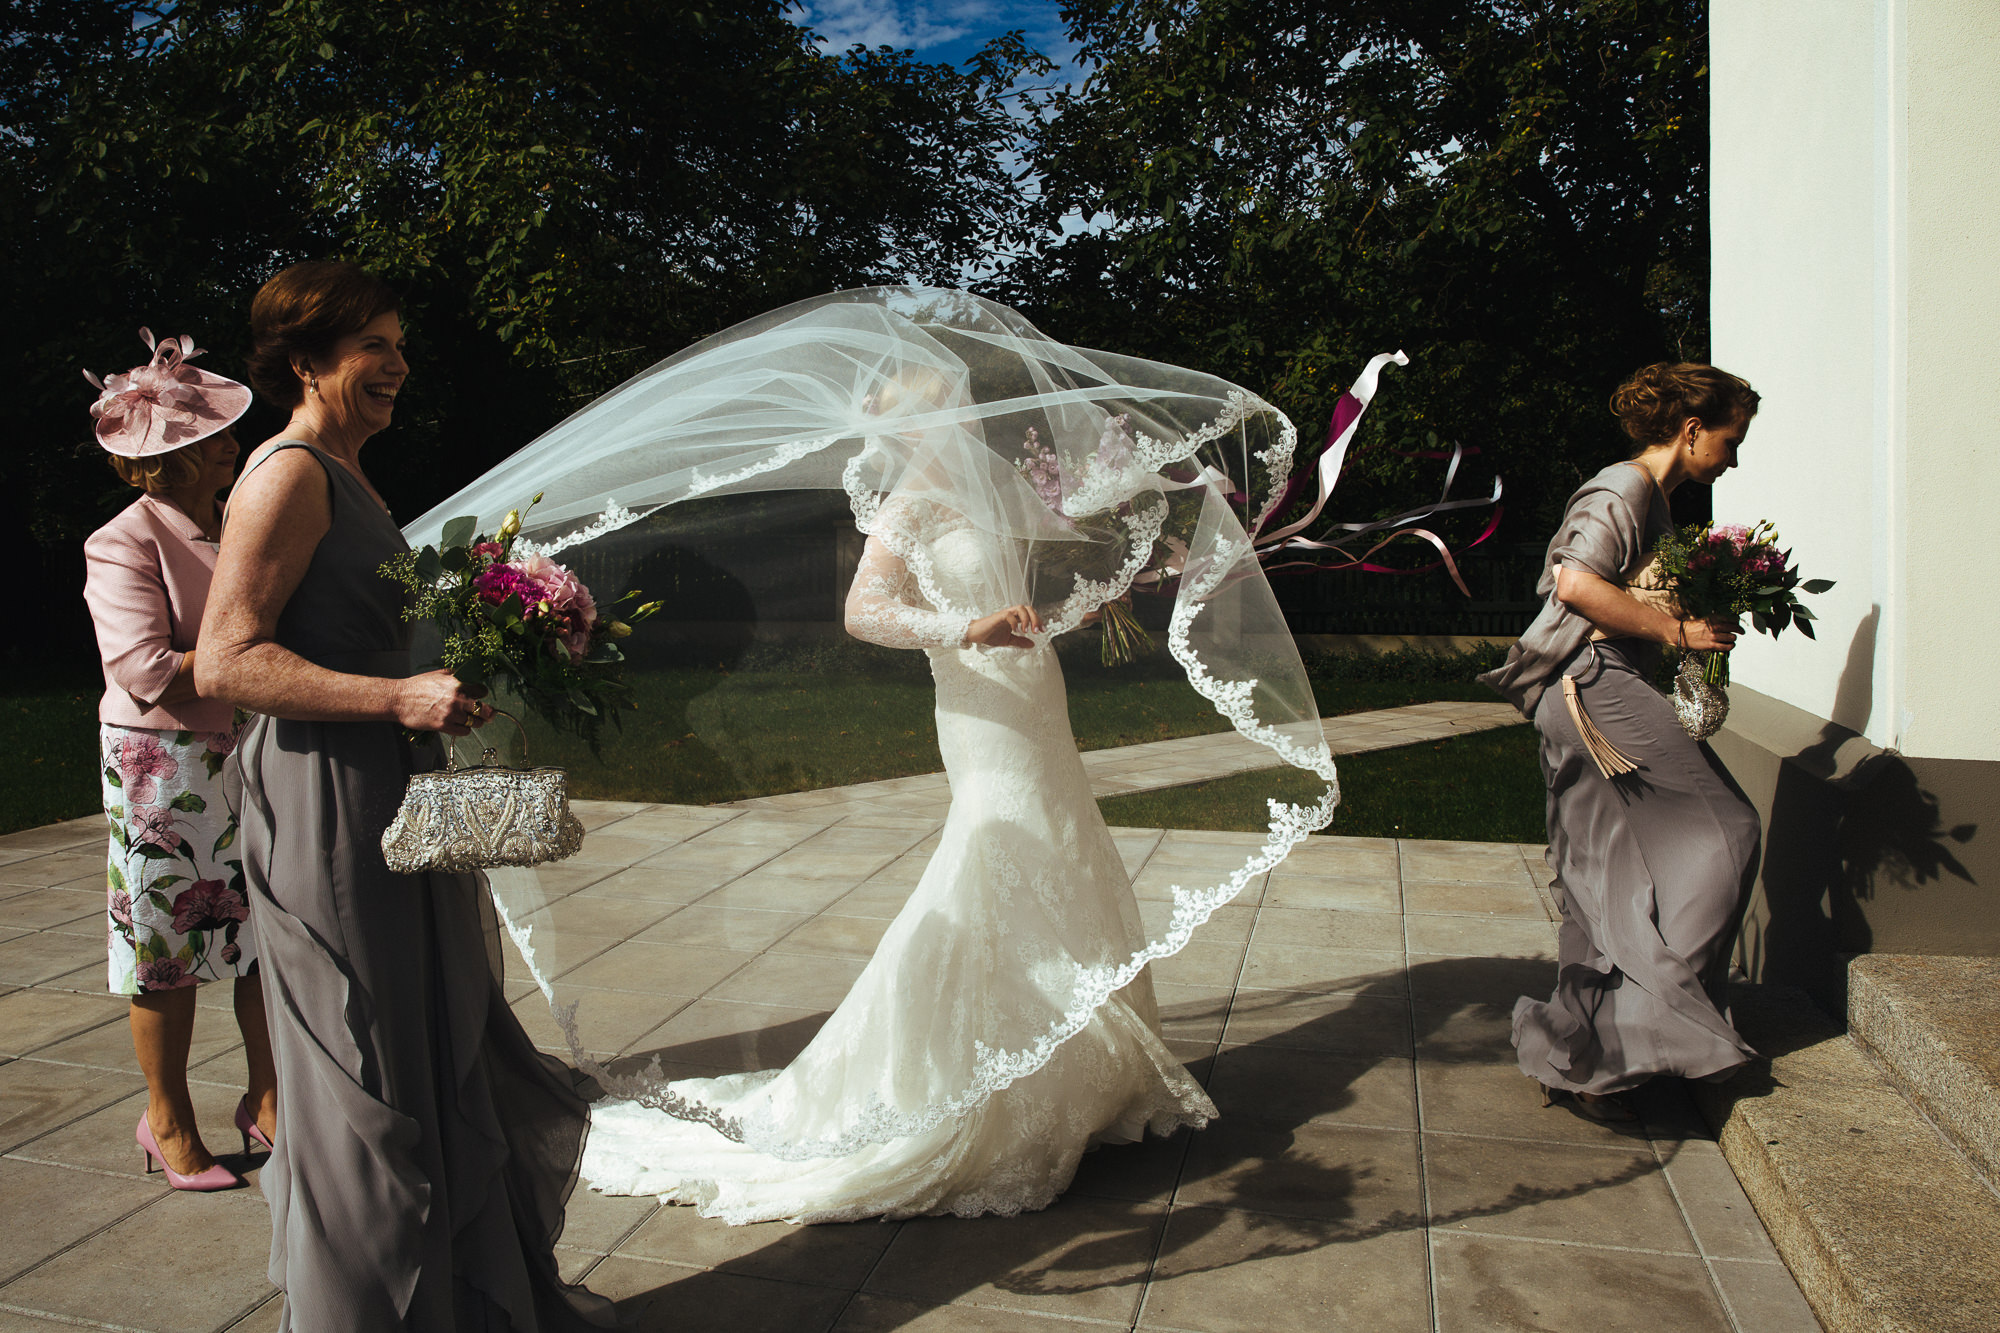 the bride's veil in the wind